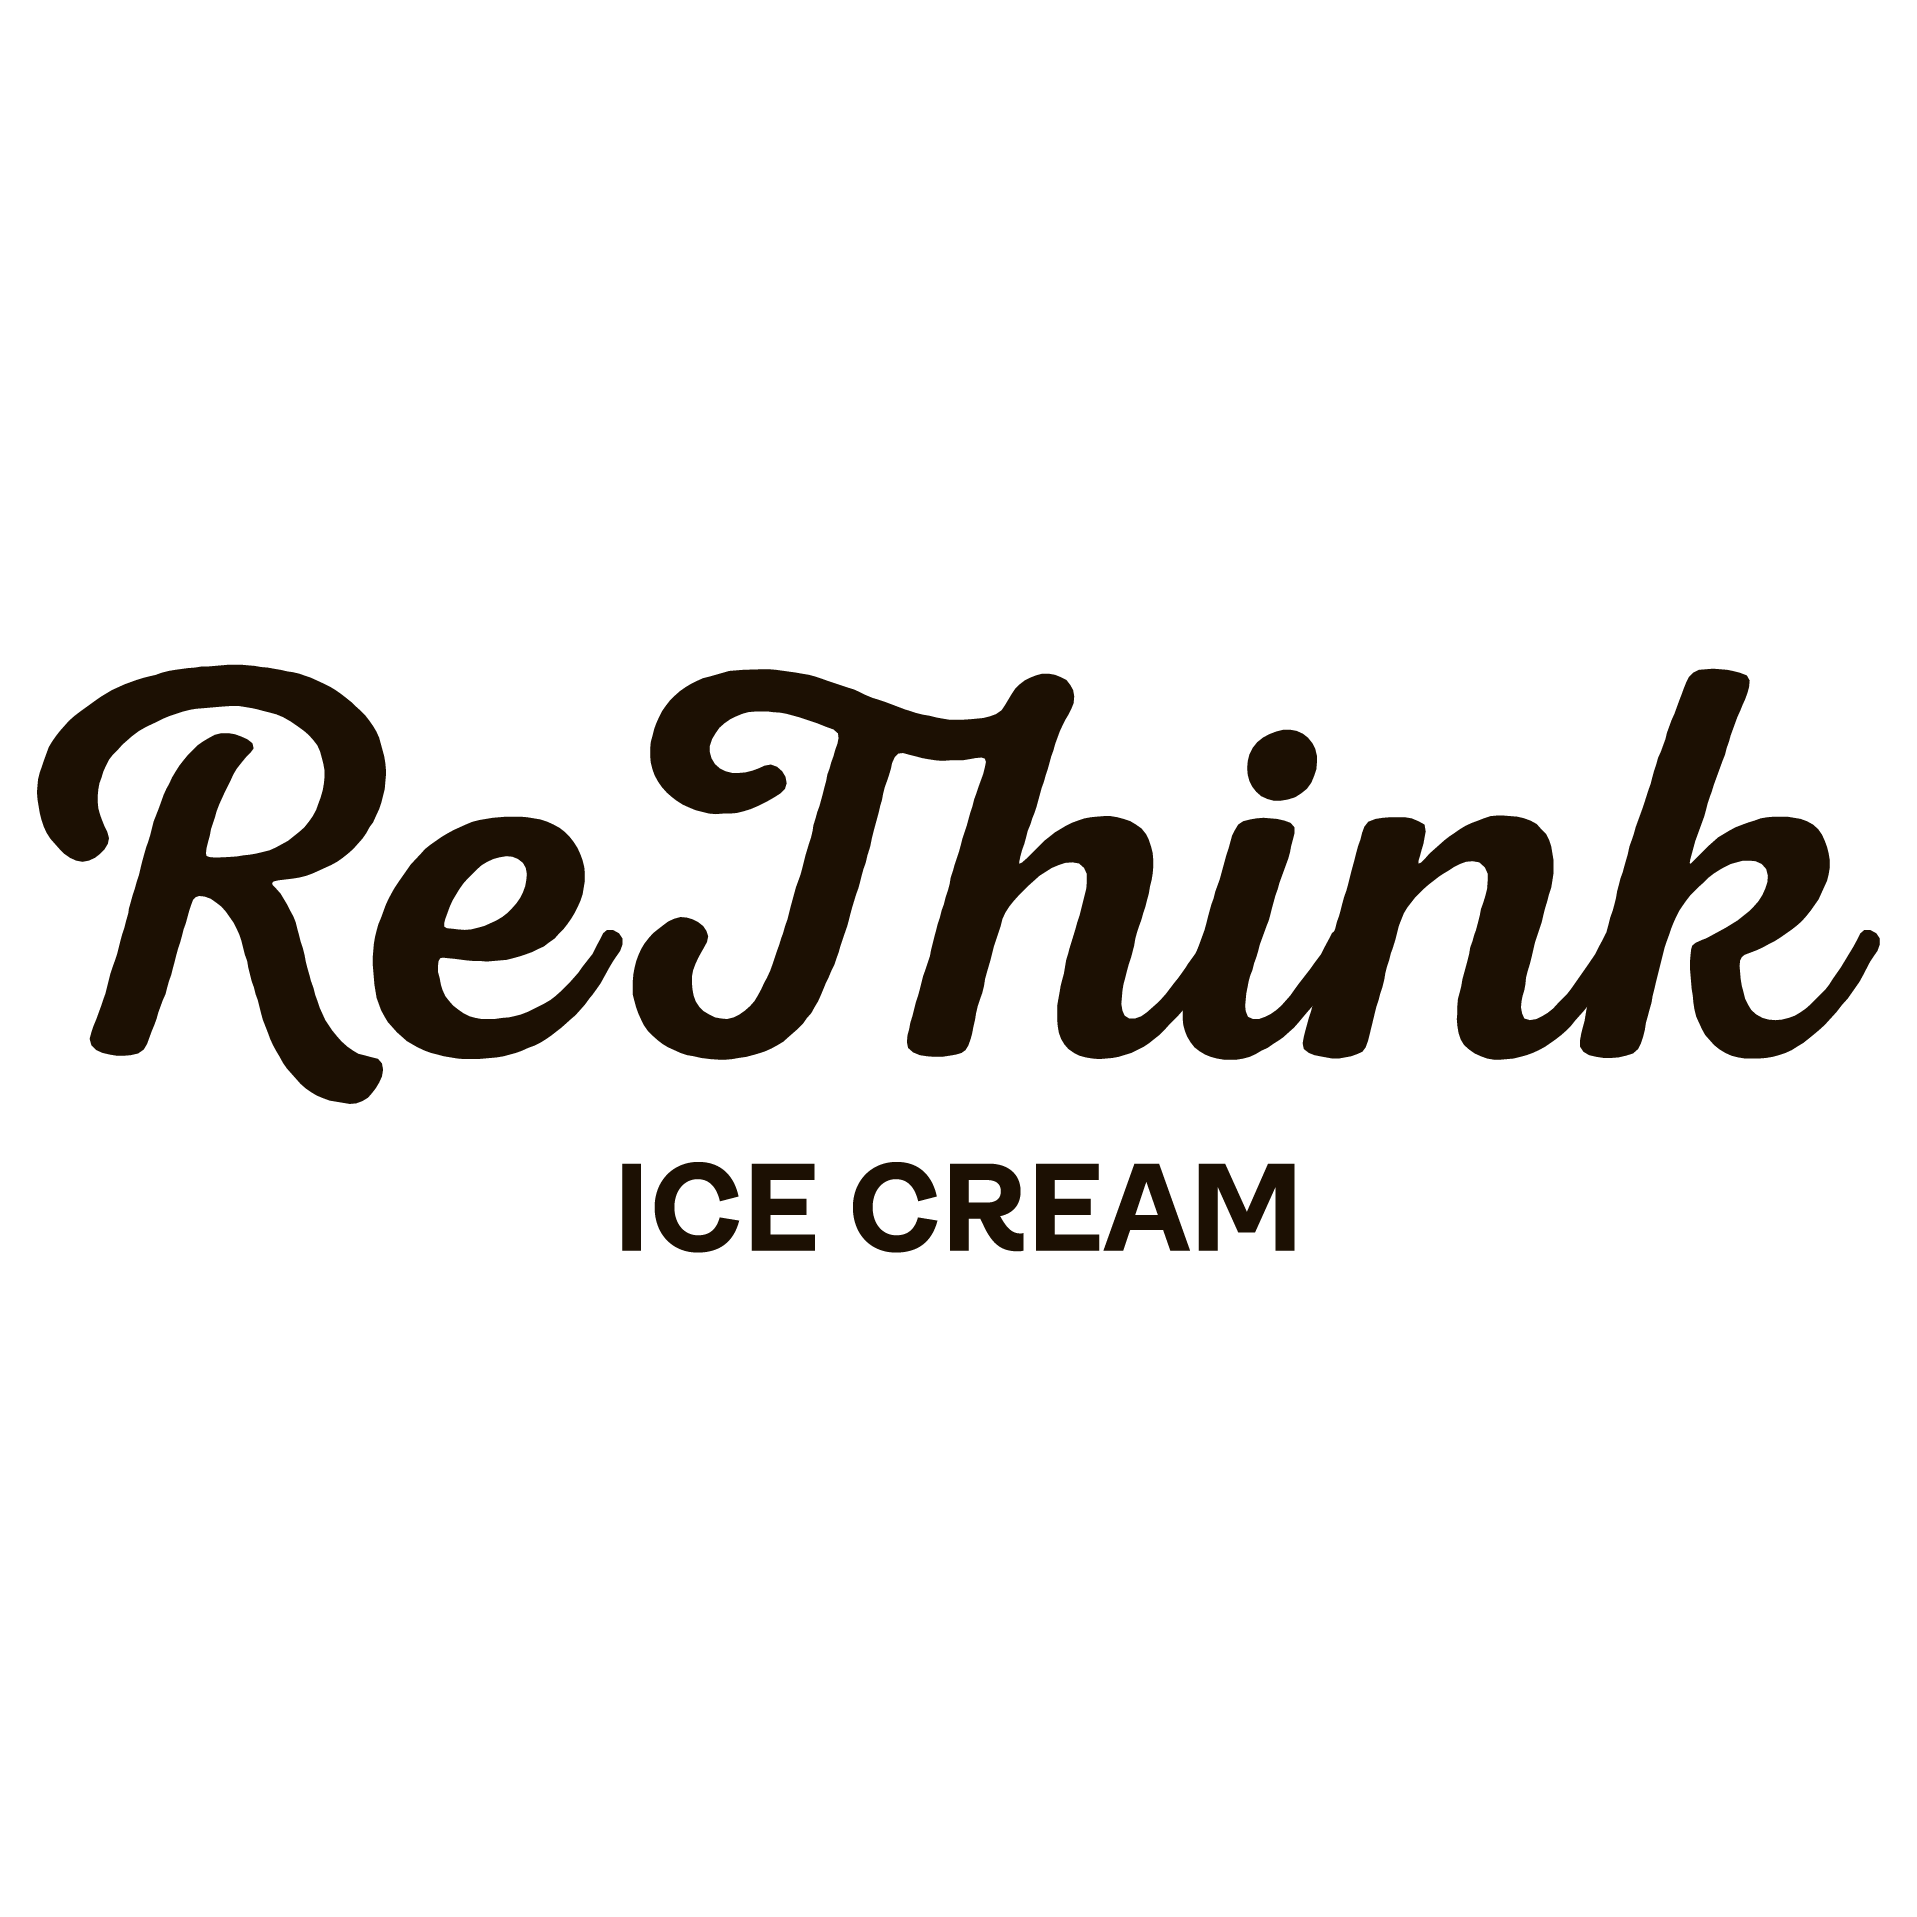 ReThink Ice Cream Launches Equity Crowdfunding Campaign